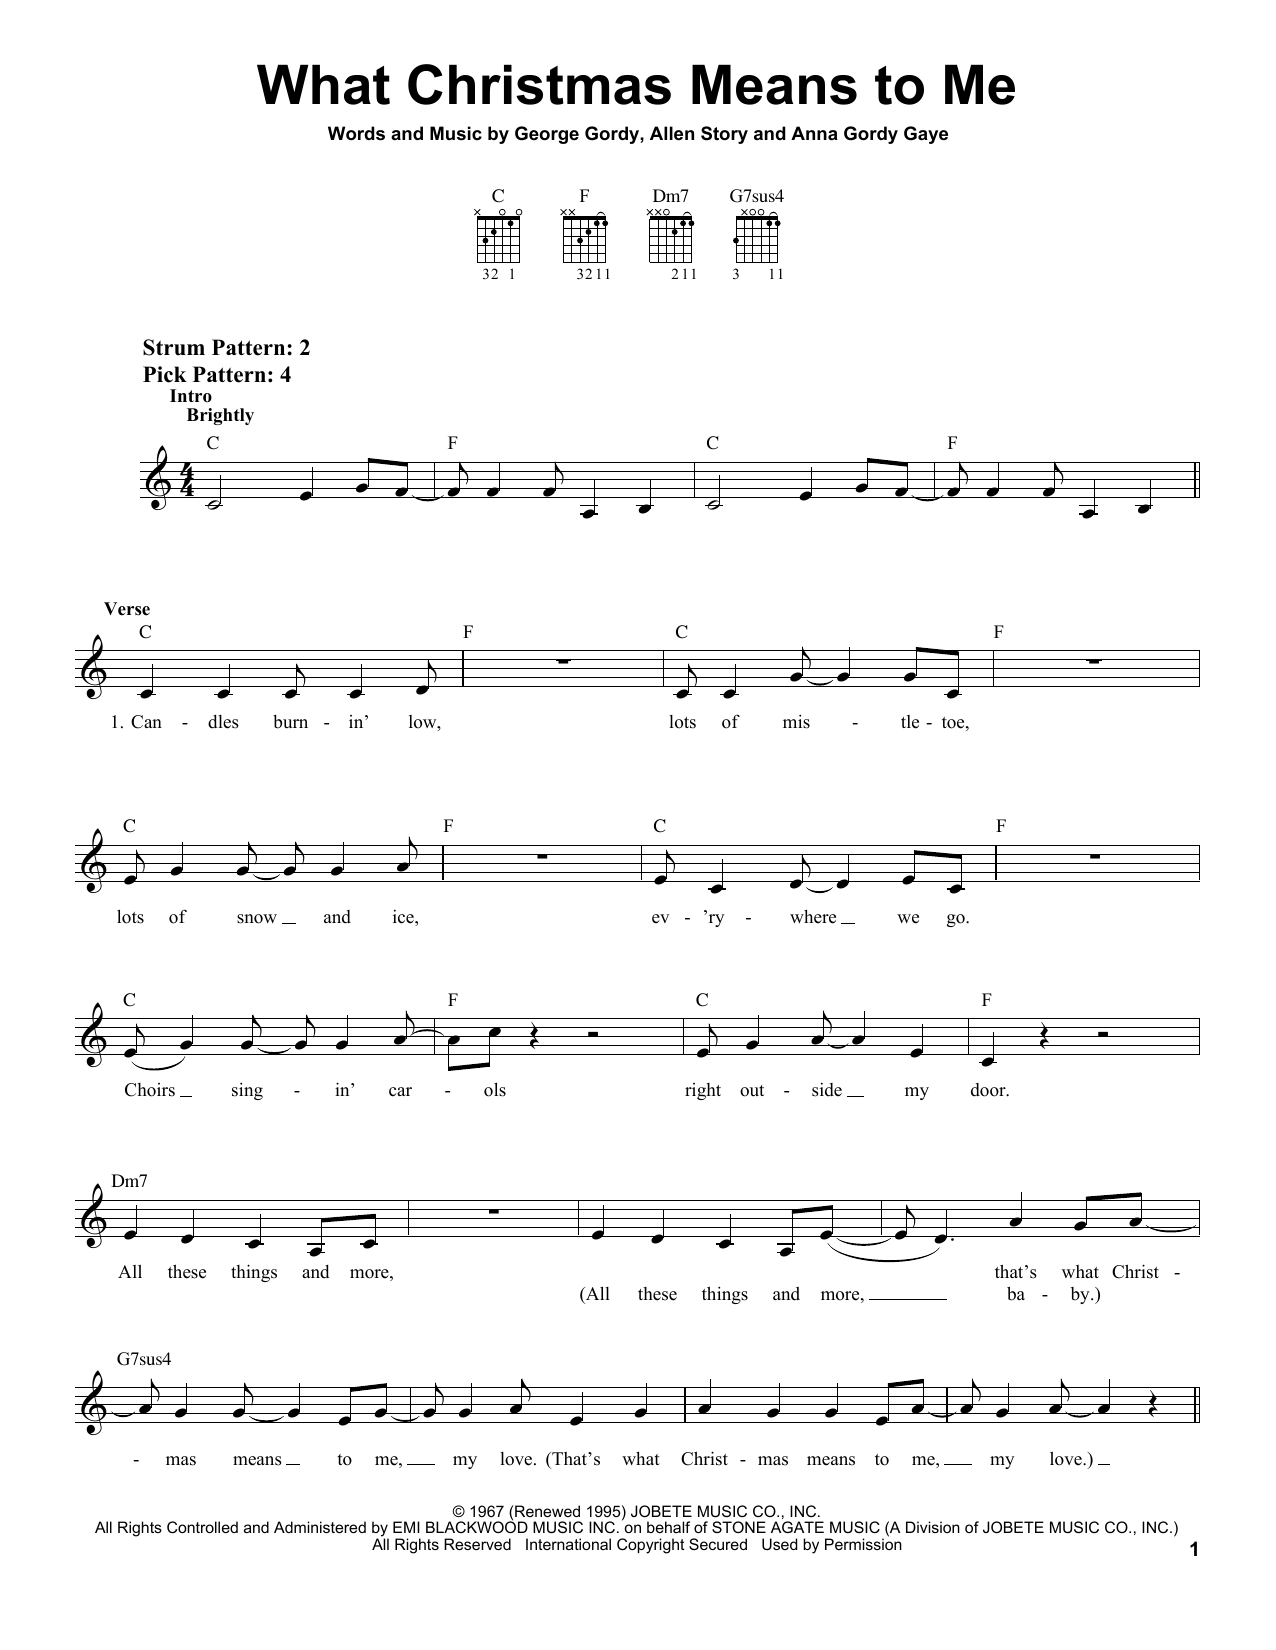 Stevie Wonder What Christmas Means To Me sheet music notes and chords. Download Printable PDF.